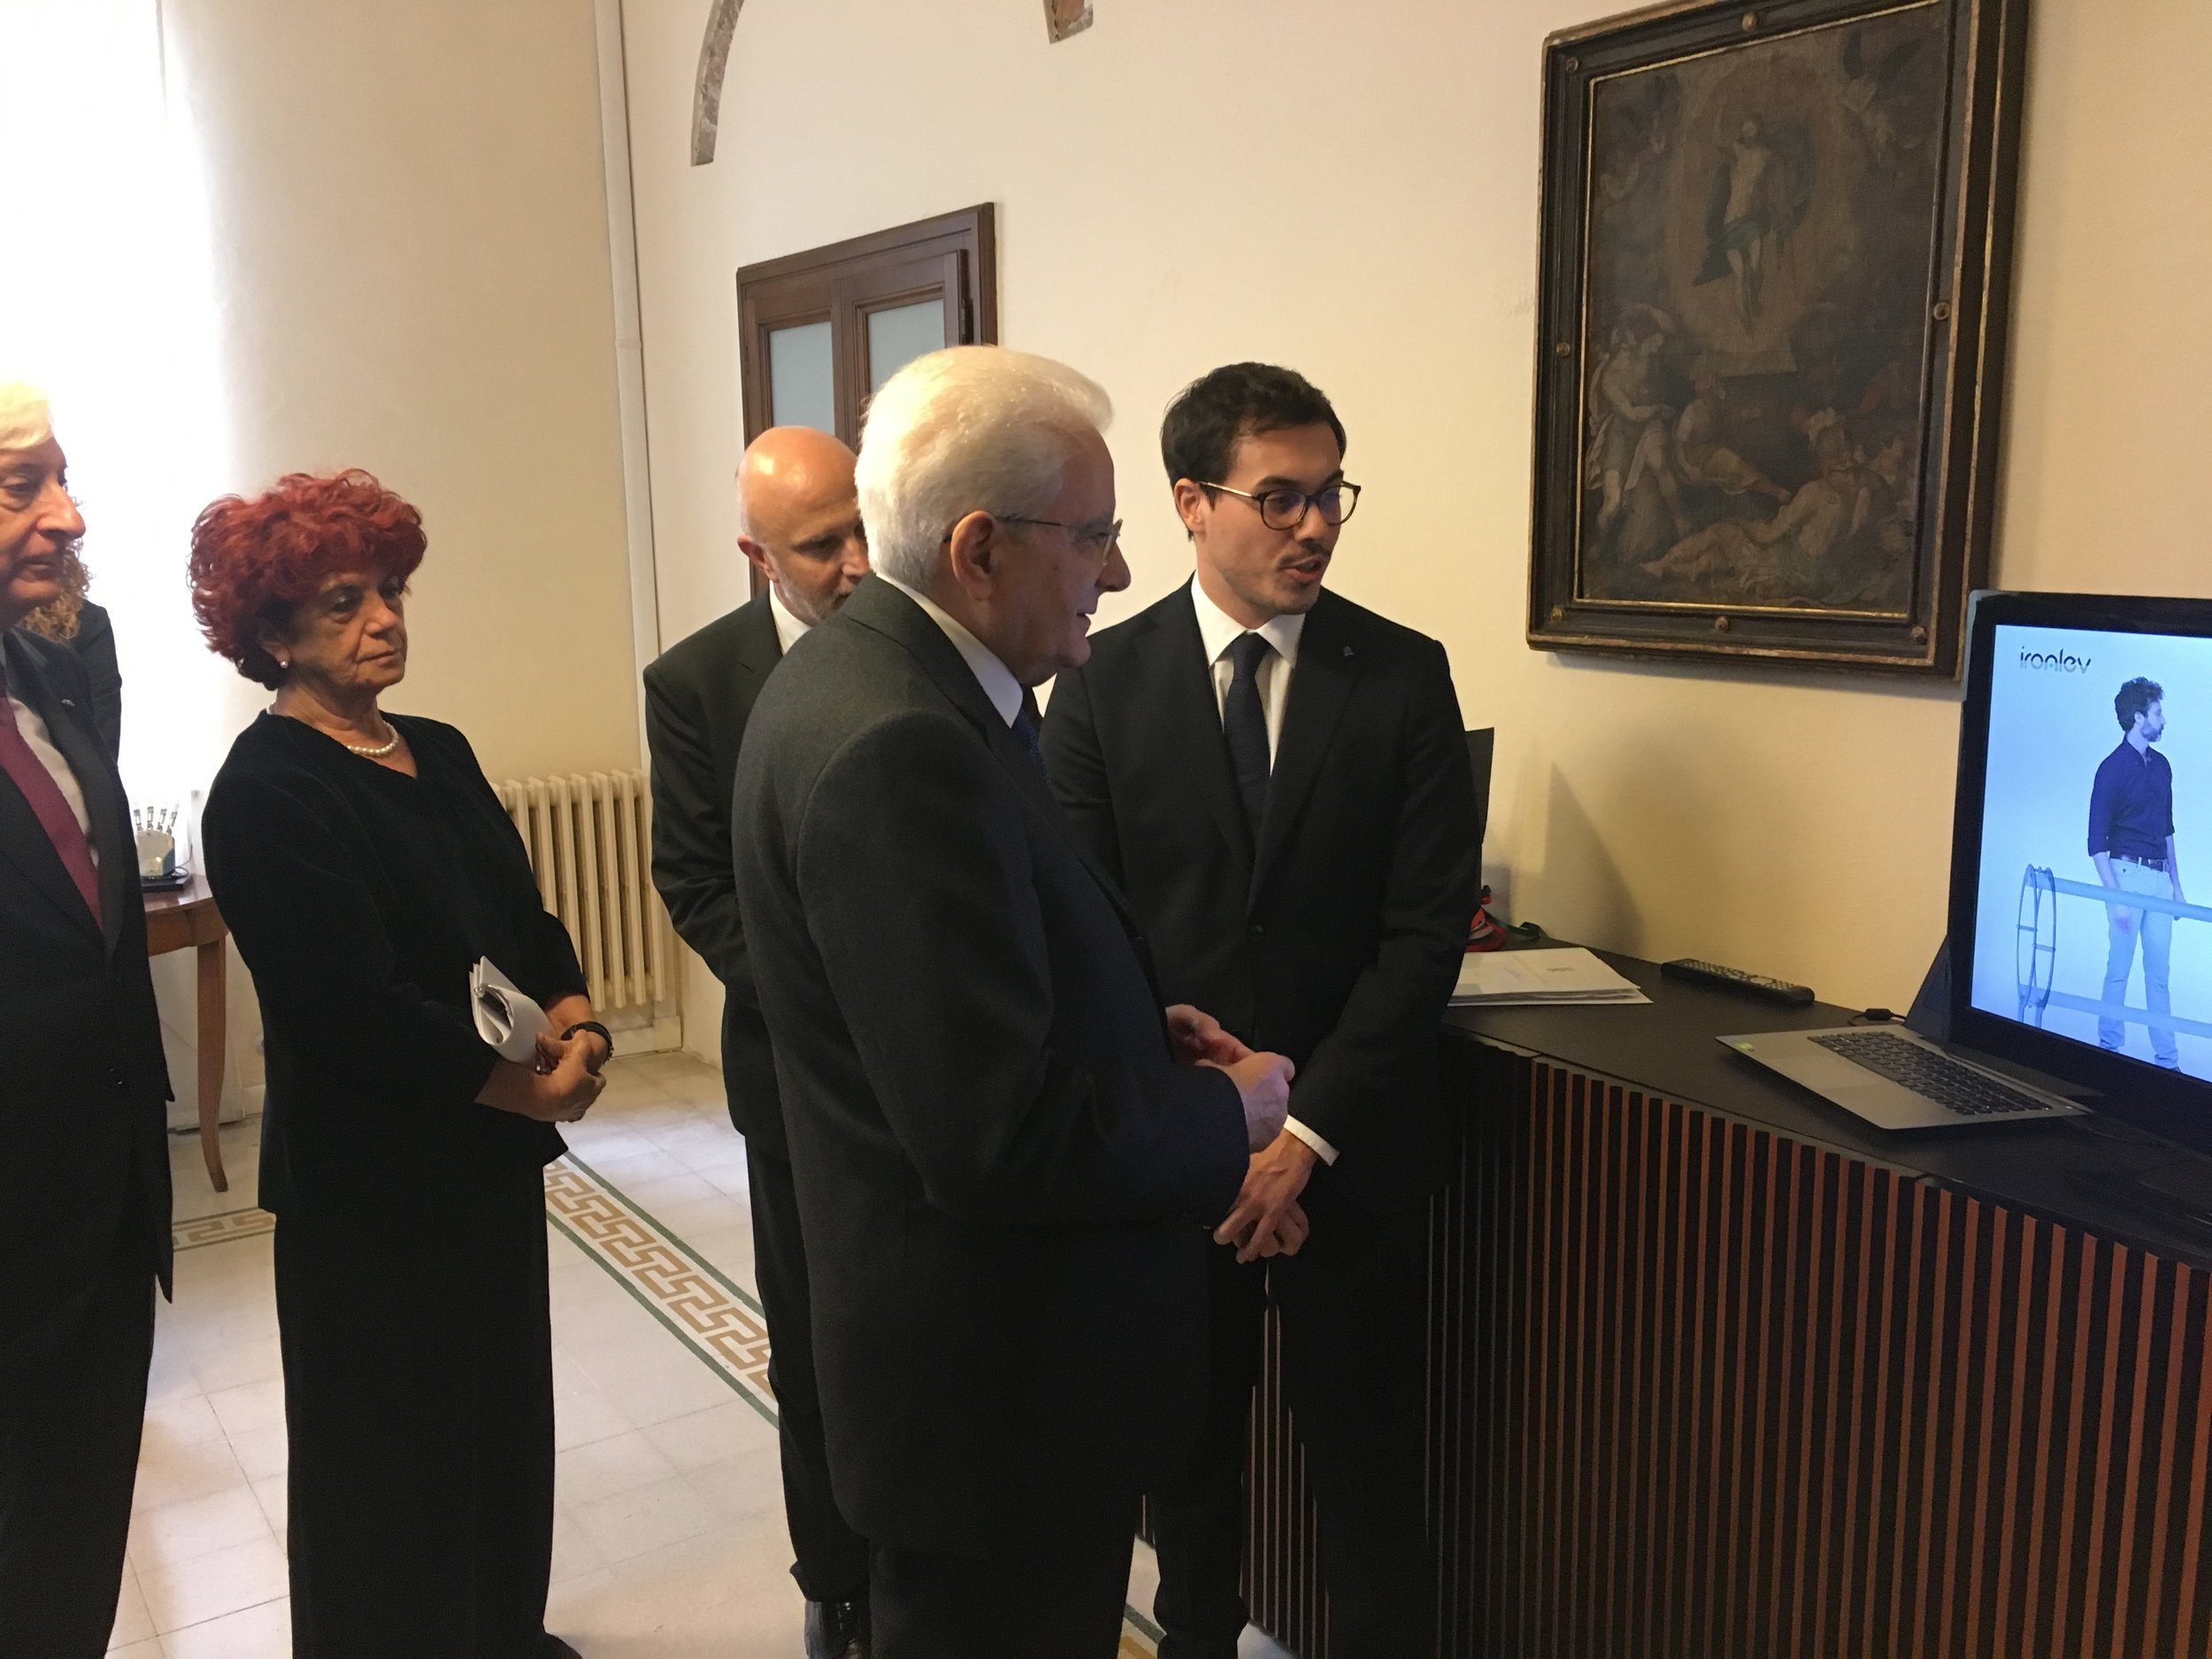 Lorenzo Andrea Parrotta presents our technology to the Italian President Sergio Mattarella and the Minister of Education, University and Research Valeria Fedeli